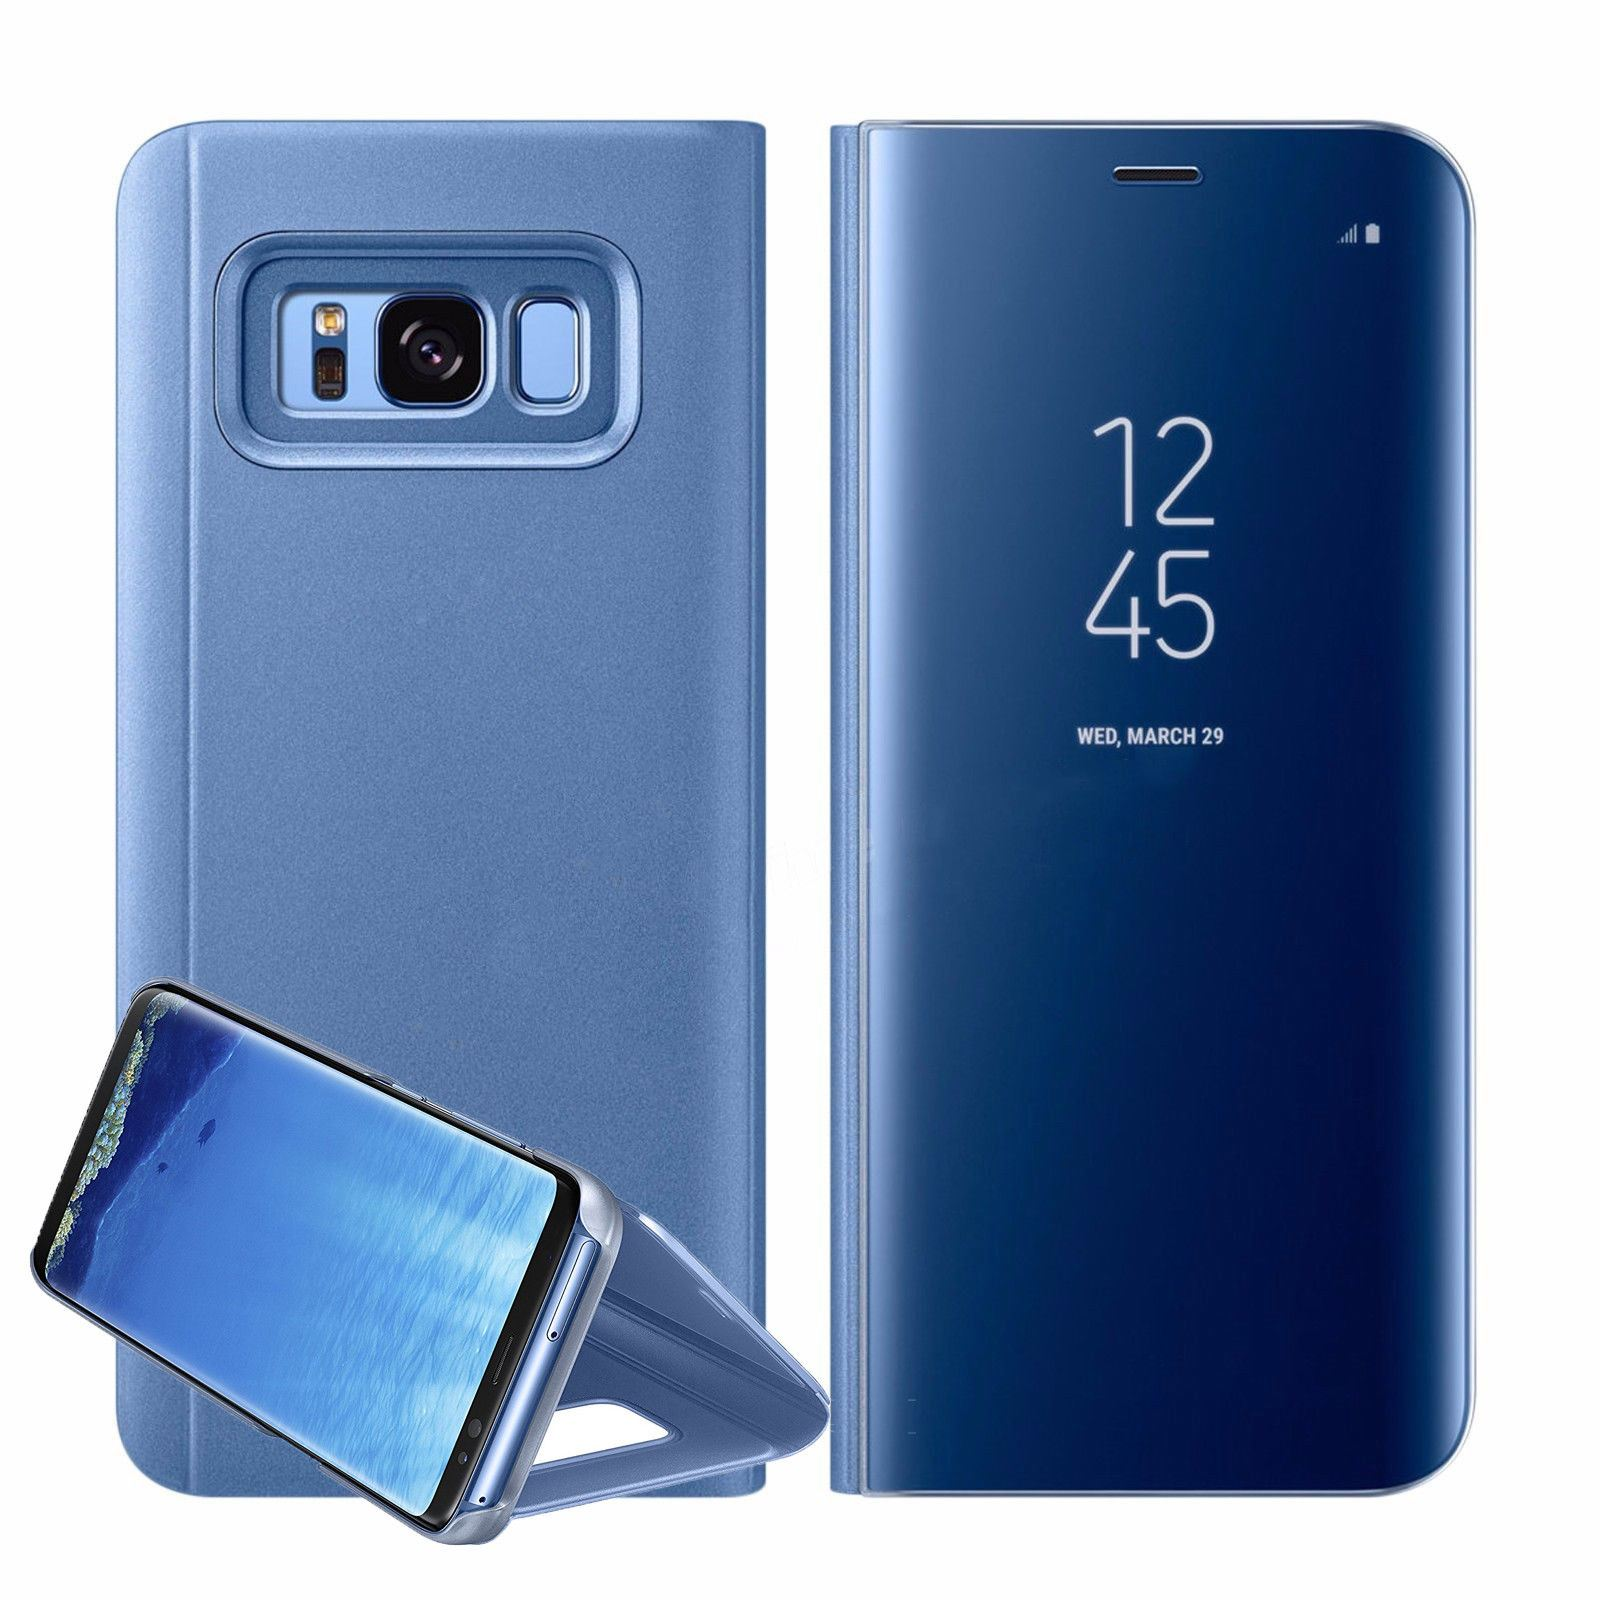 New-Samsung-Galaxy-S8-S9-S10-Smart-View-Mirror-Leather-Flip-Stand-Case-Cover thumbnail 36